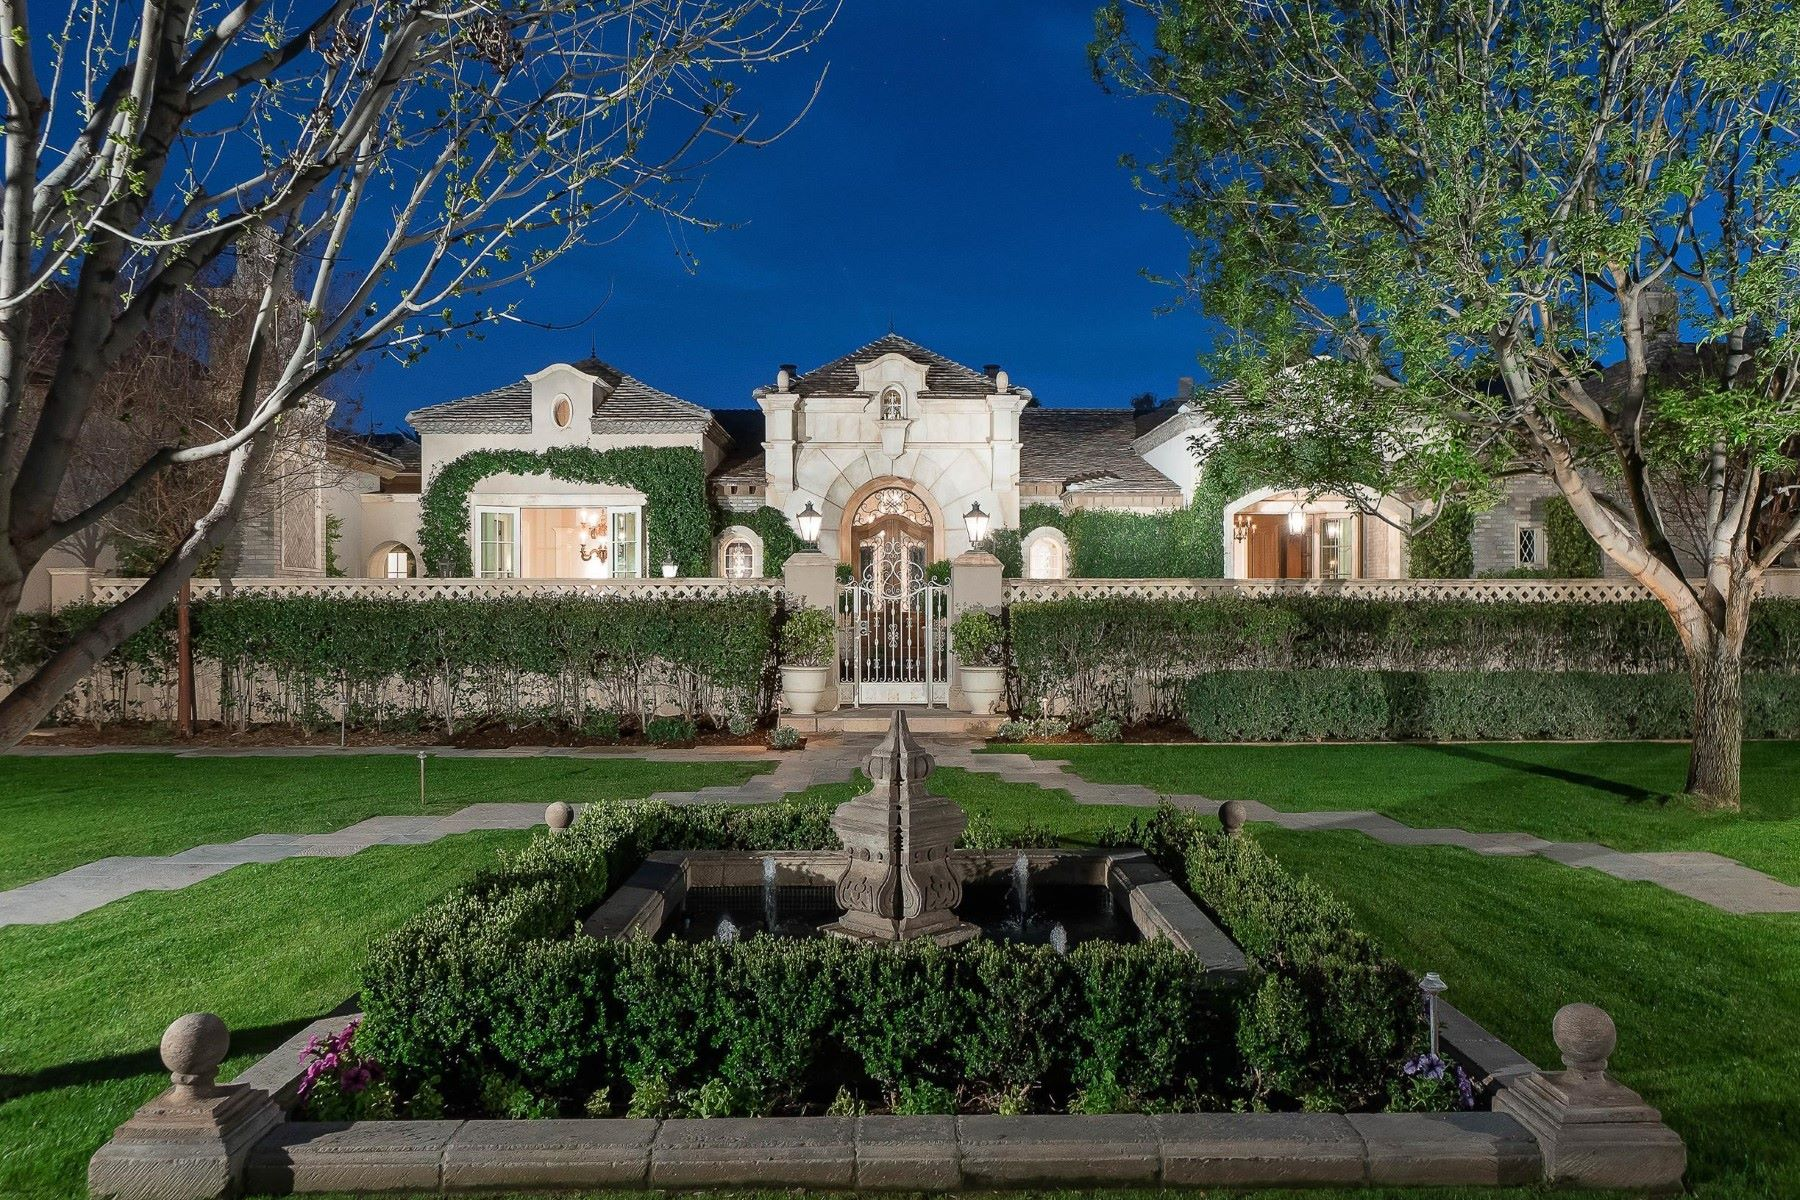 Casa Unifamiliar por un Venta en Breathtaking European inspired timeless masterpiece 6121 E ORCHID LN Paradise Valley, Arizona, 85253 Estados Unidos